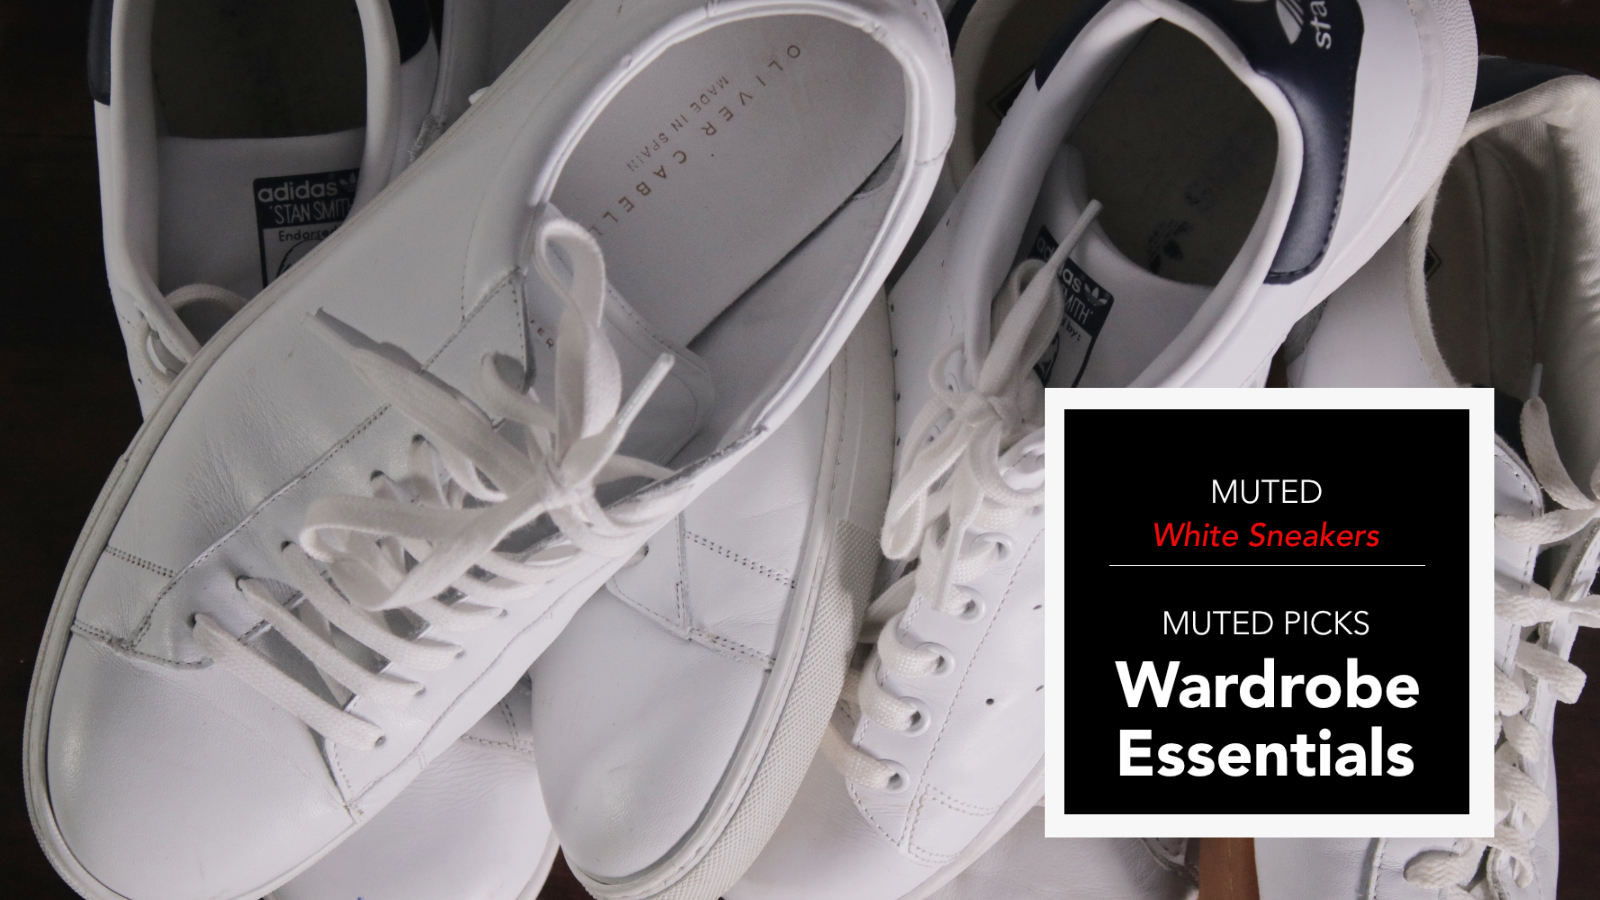 Wardrobe Essentials - Men's White Sneakers